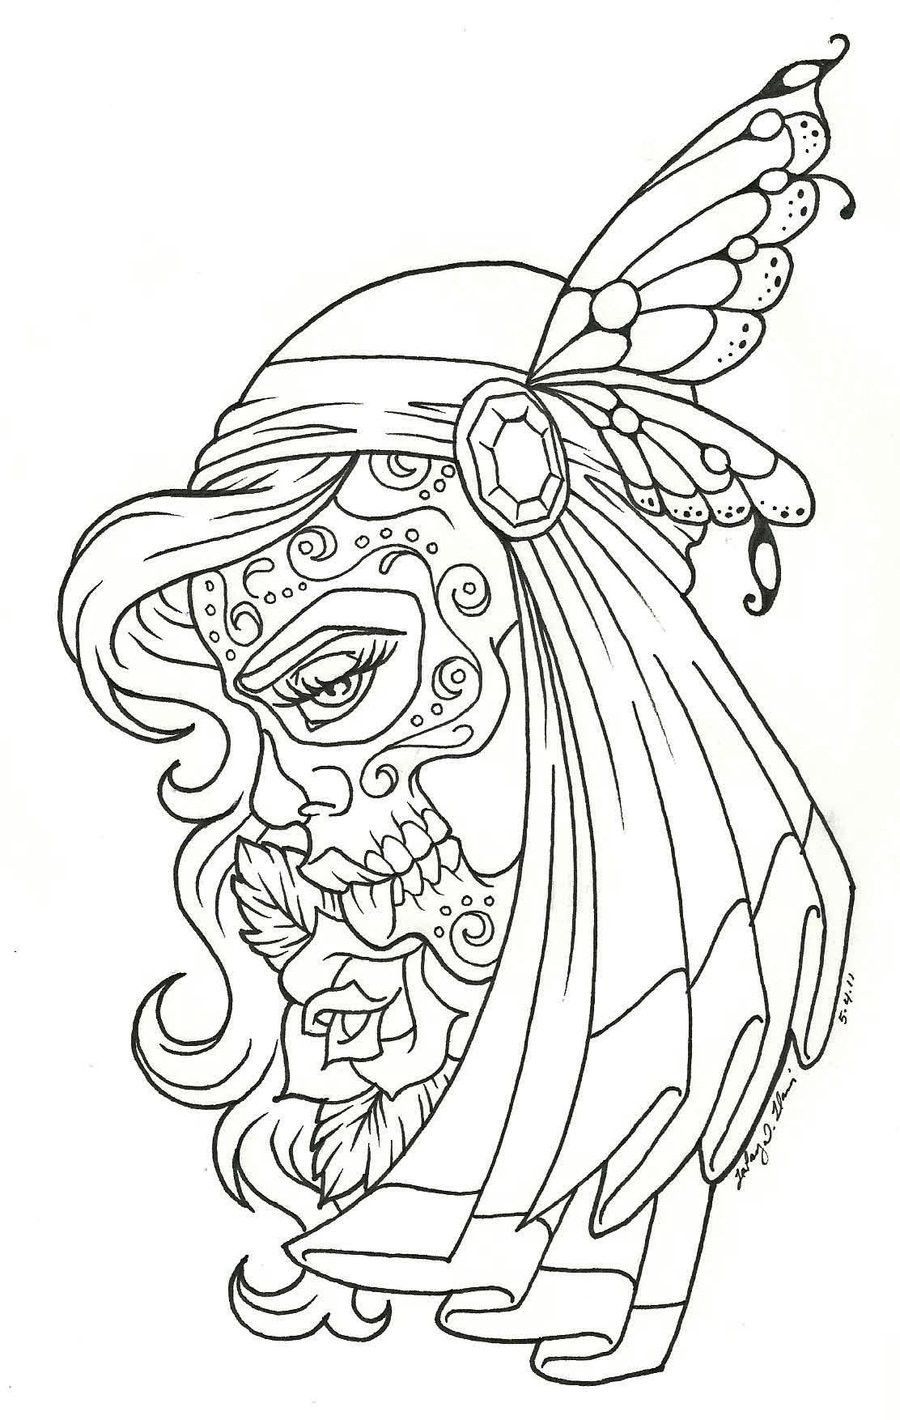 Day Of The Dead Coloring Pages Free | Dia de los Muertos | Pinterest ...